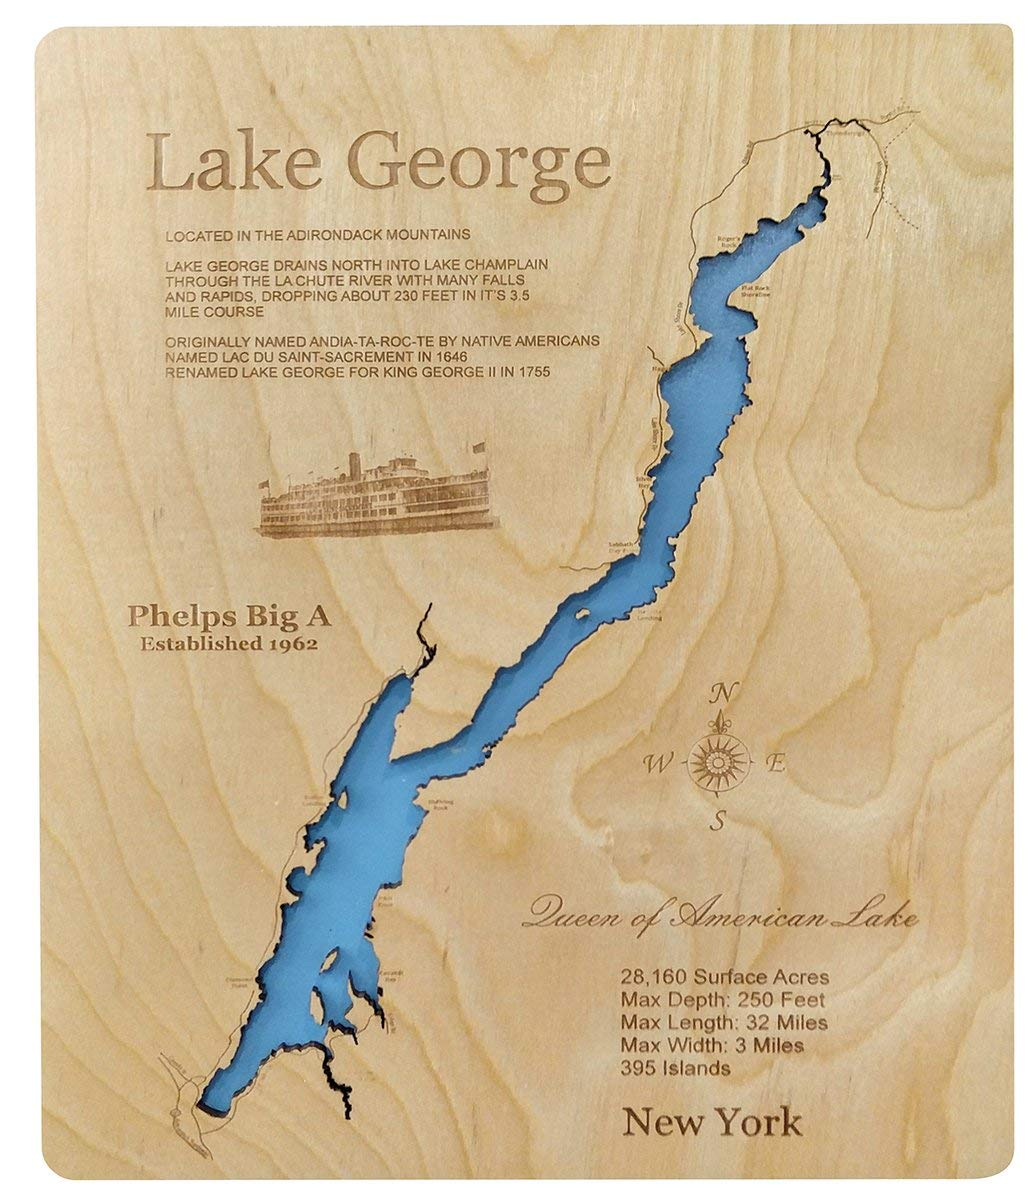 map of lake george ny area Amazon Com Lake George New York Standout Wood Map Wall Hanging map of lake george ny area